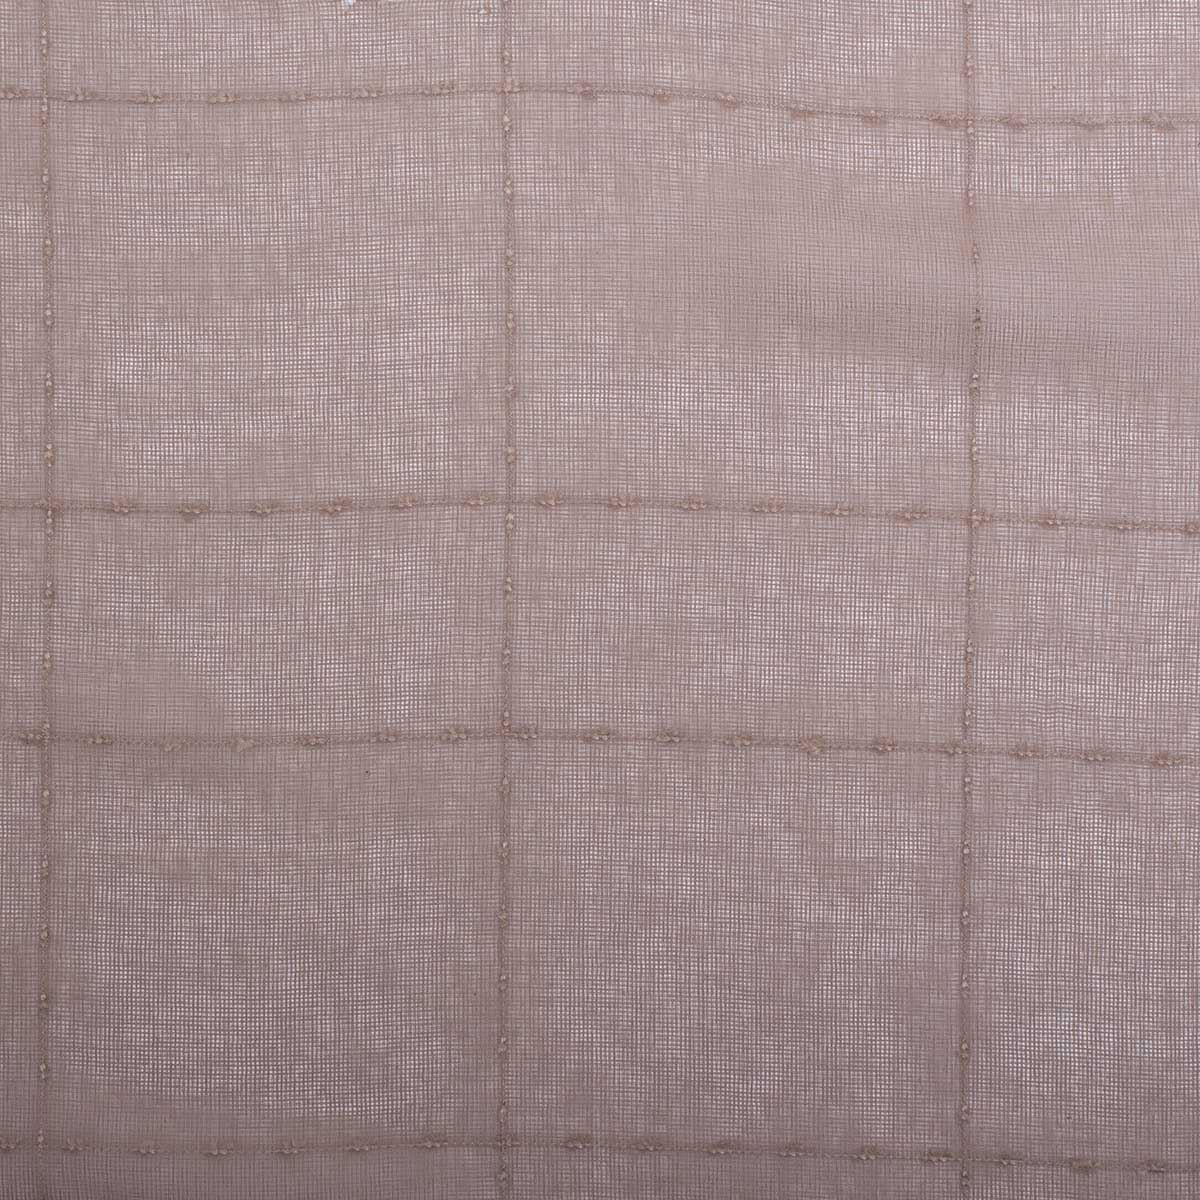 Embroidered Square Check Curtain Netting Voile Kitchen Mesh Window Fabric